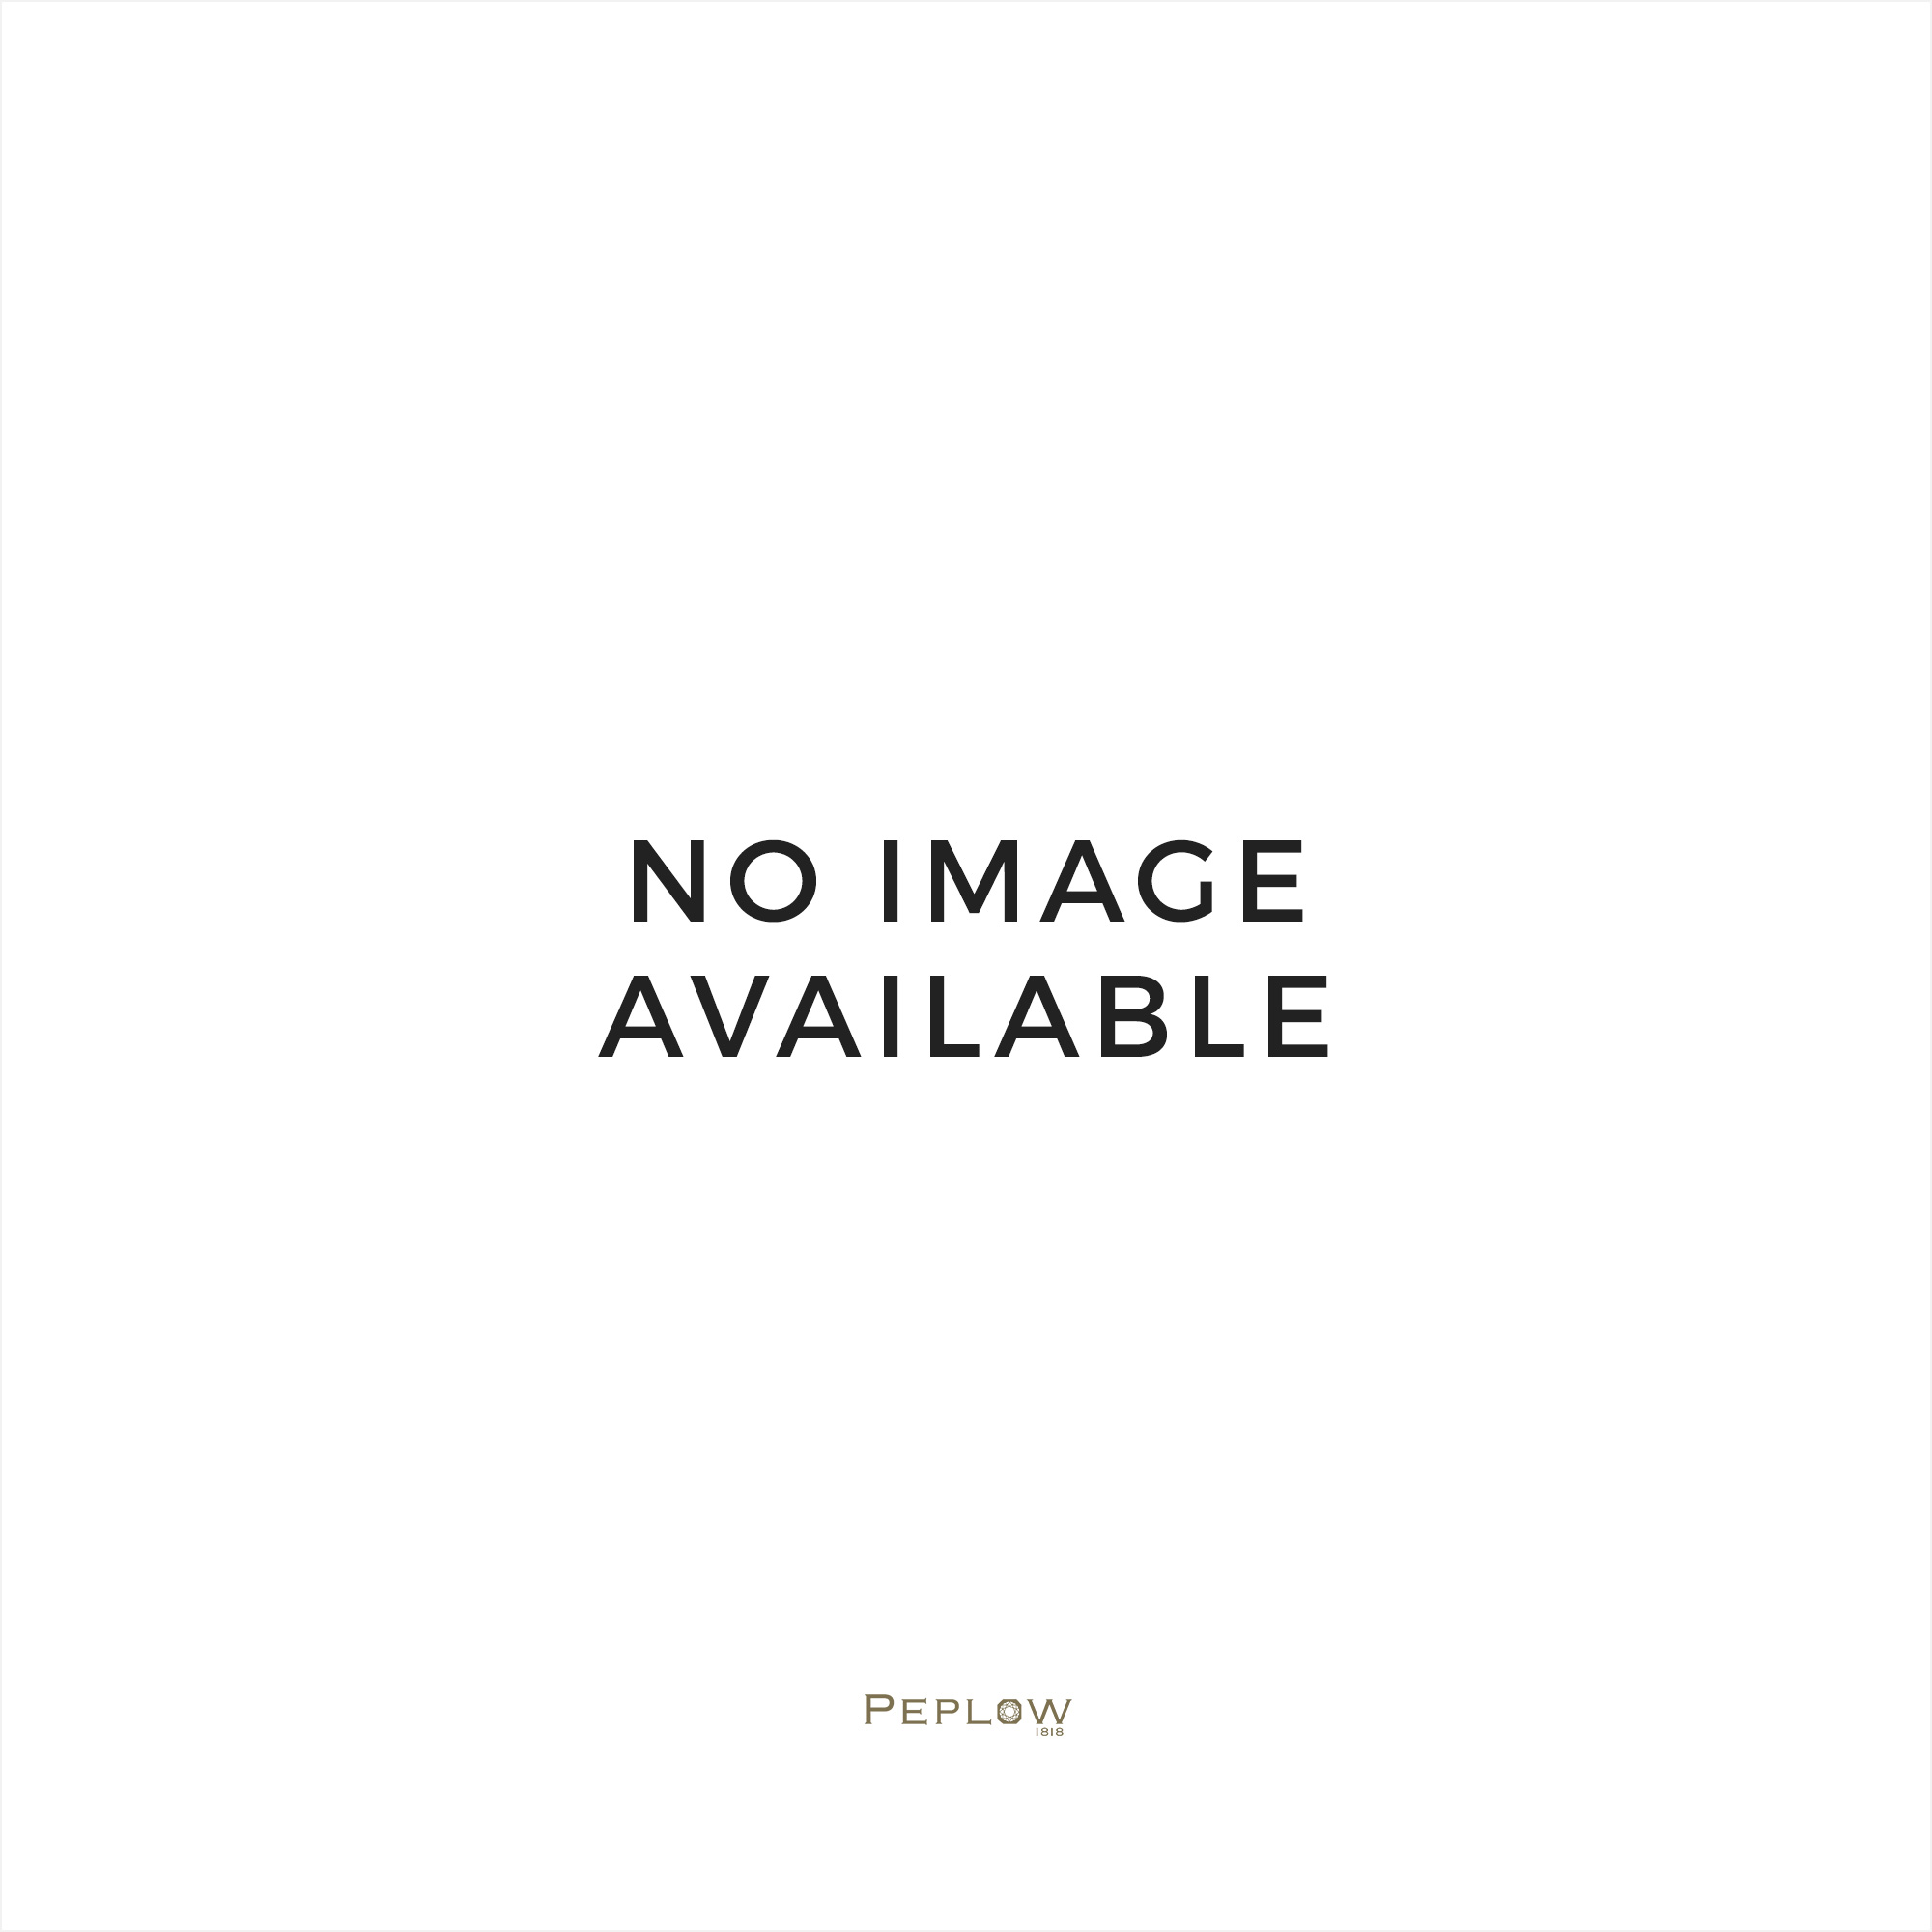 Omega Watches Omega Mens Seamaster Diver Co-Axial Chronograph Watch